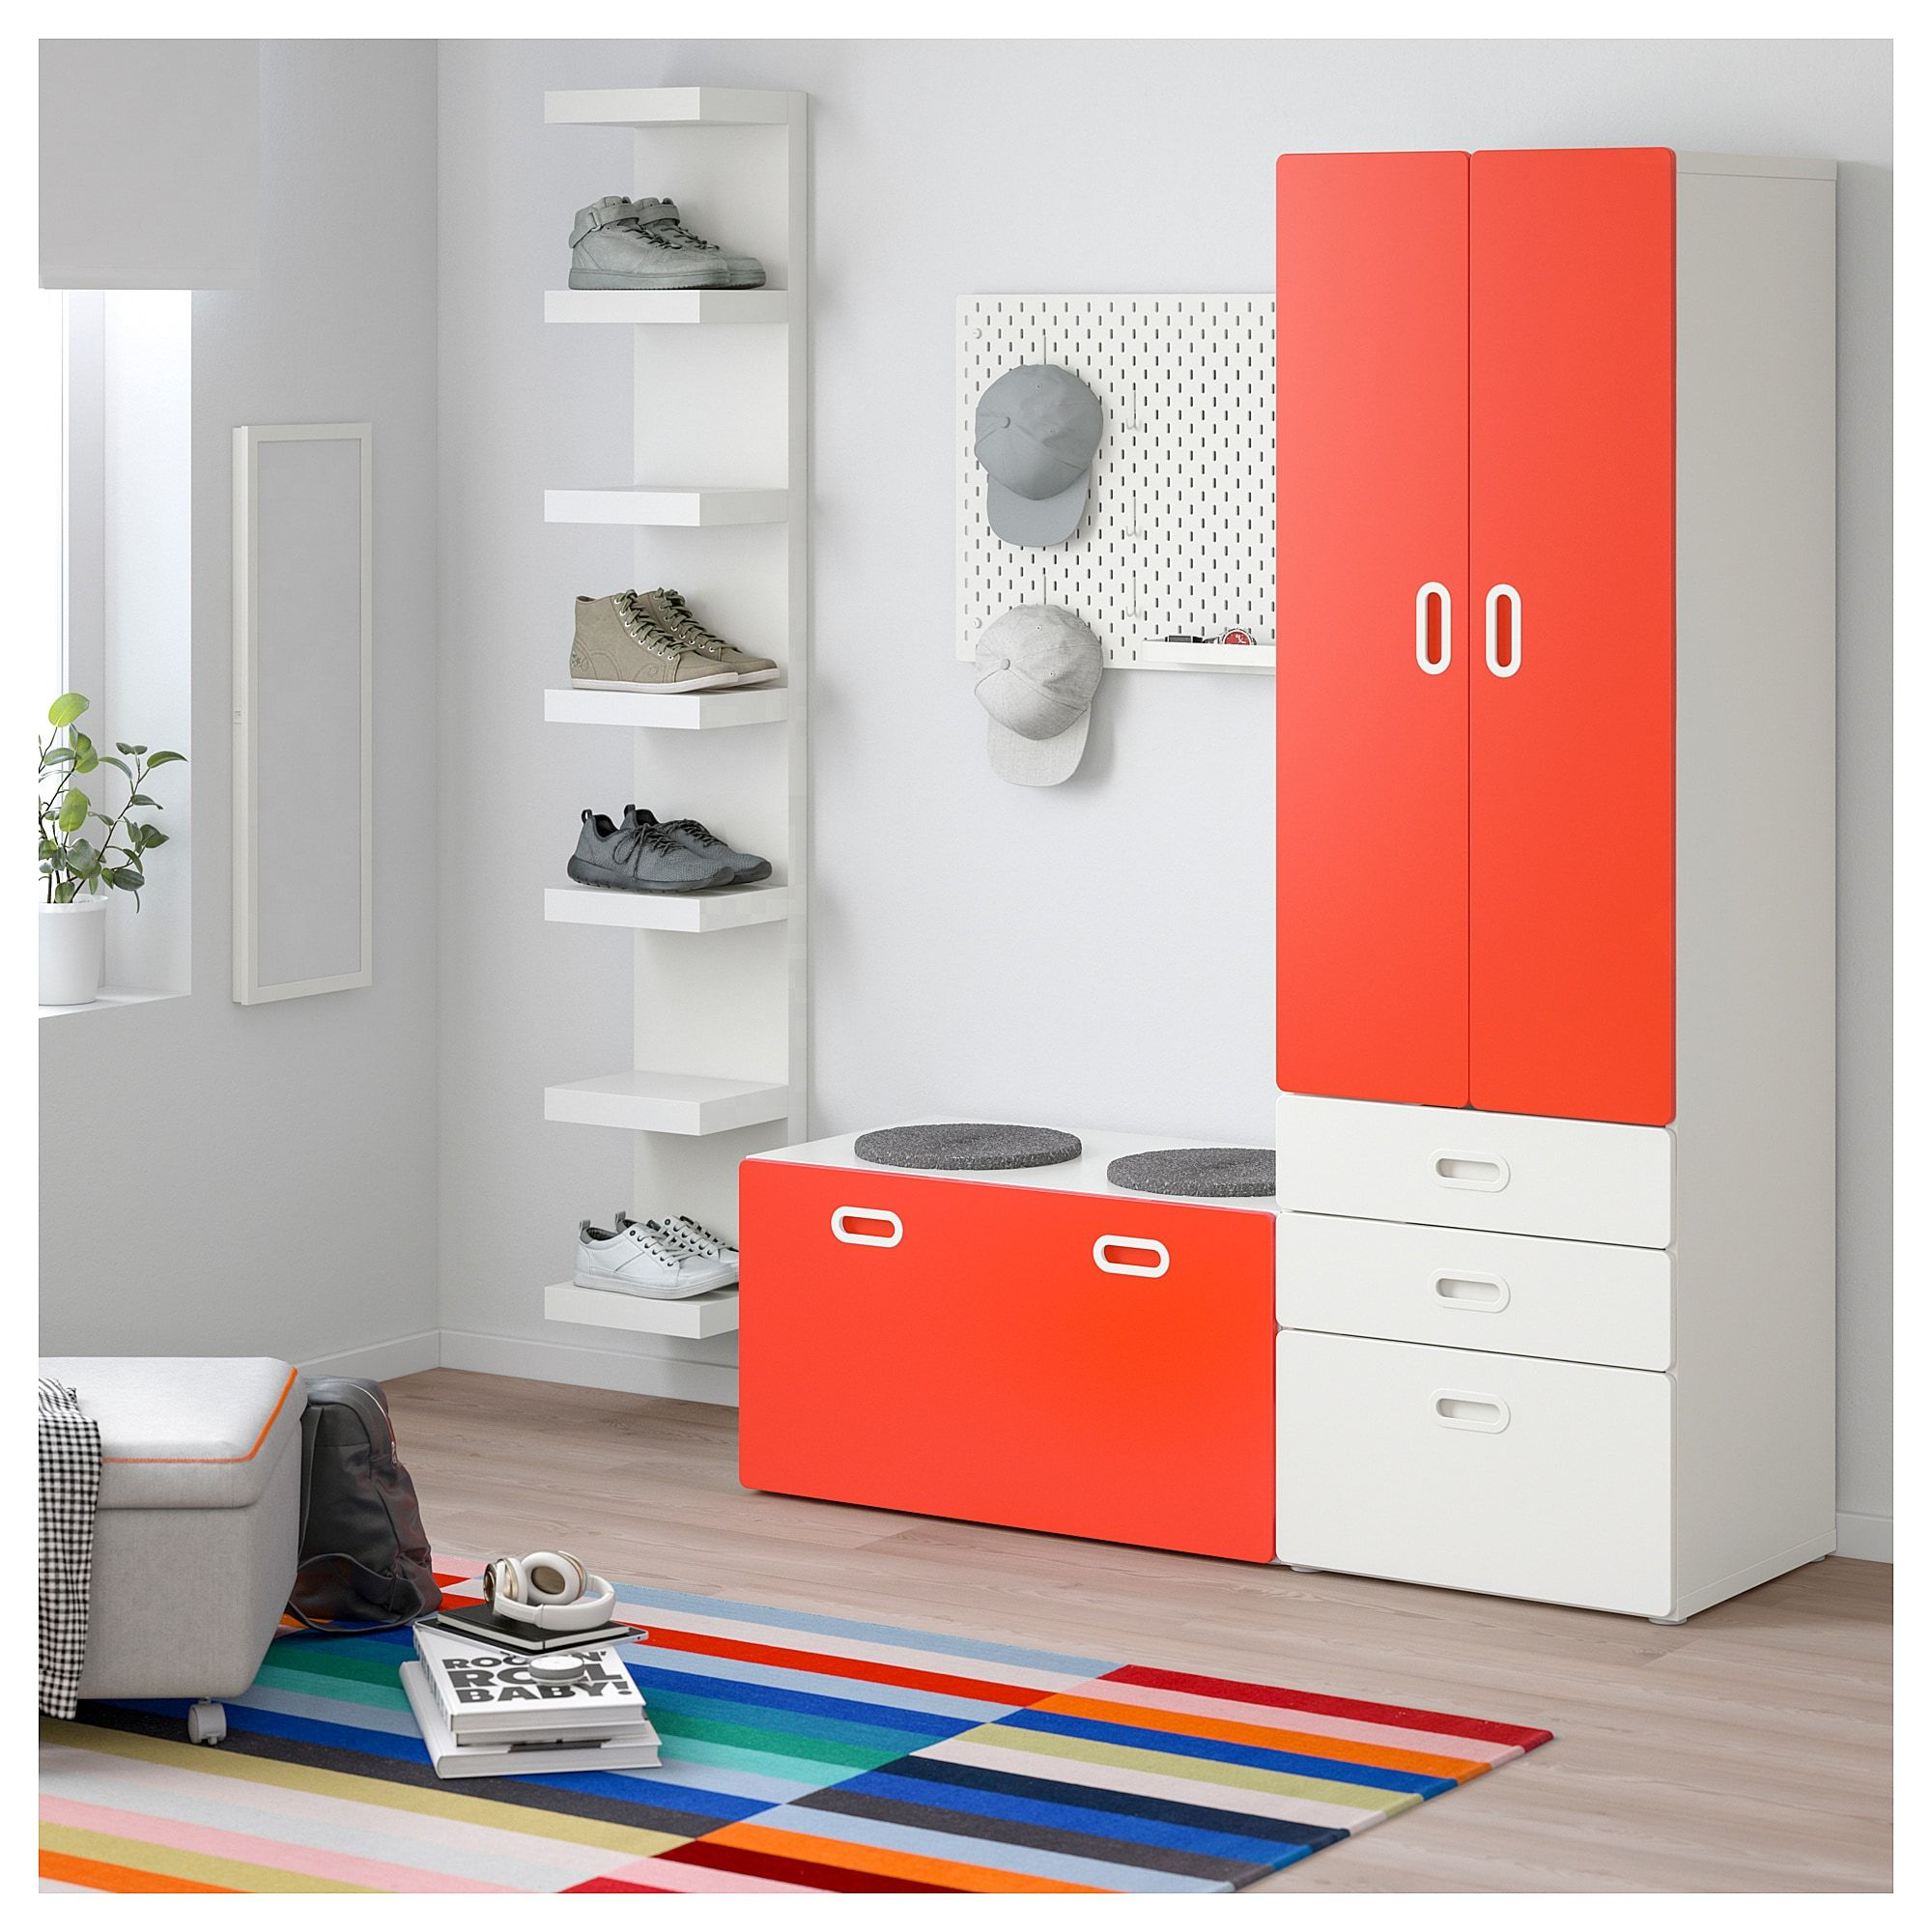 Wardrobe With Storage Bench Stuva Fritids White Red In